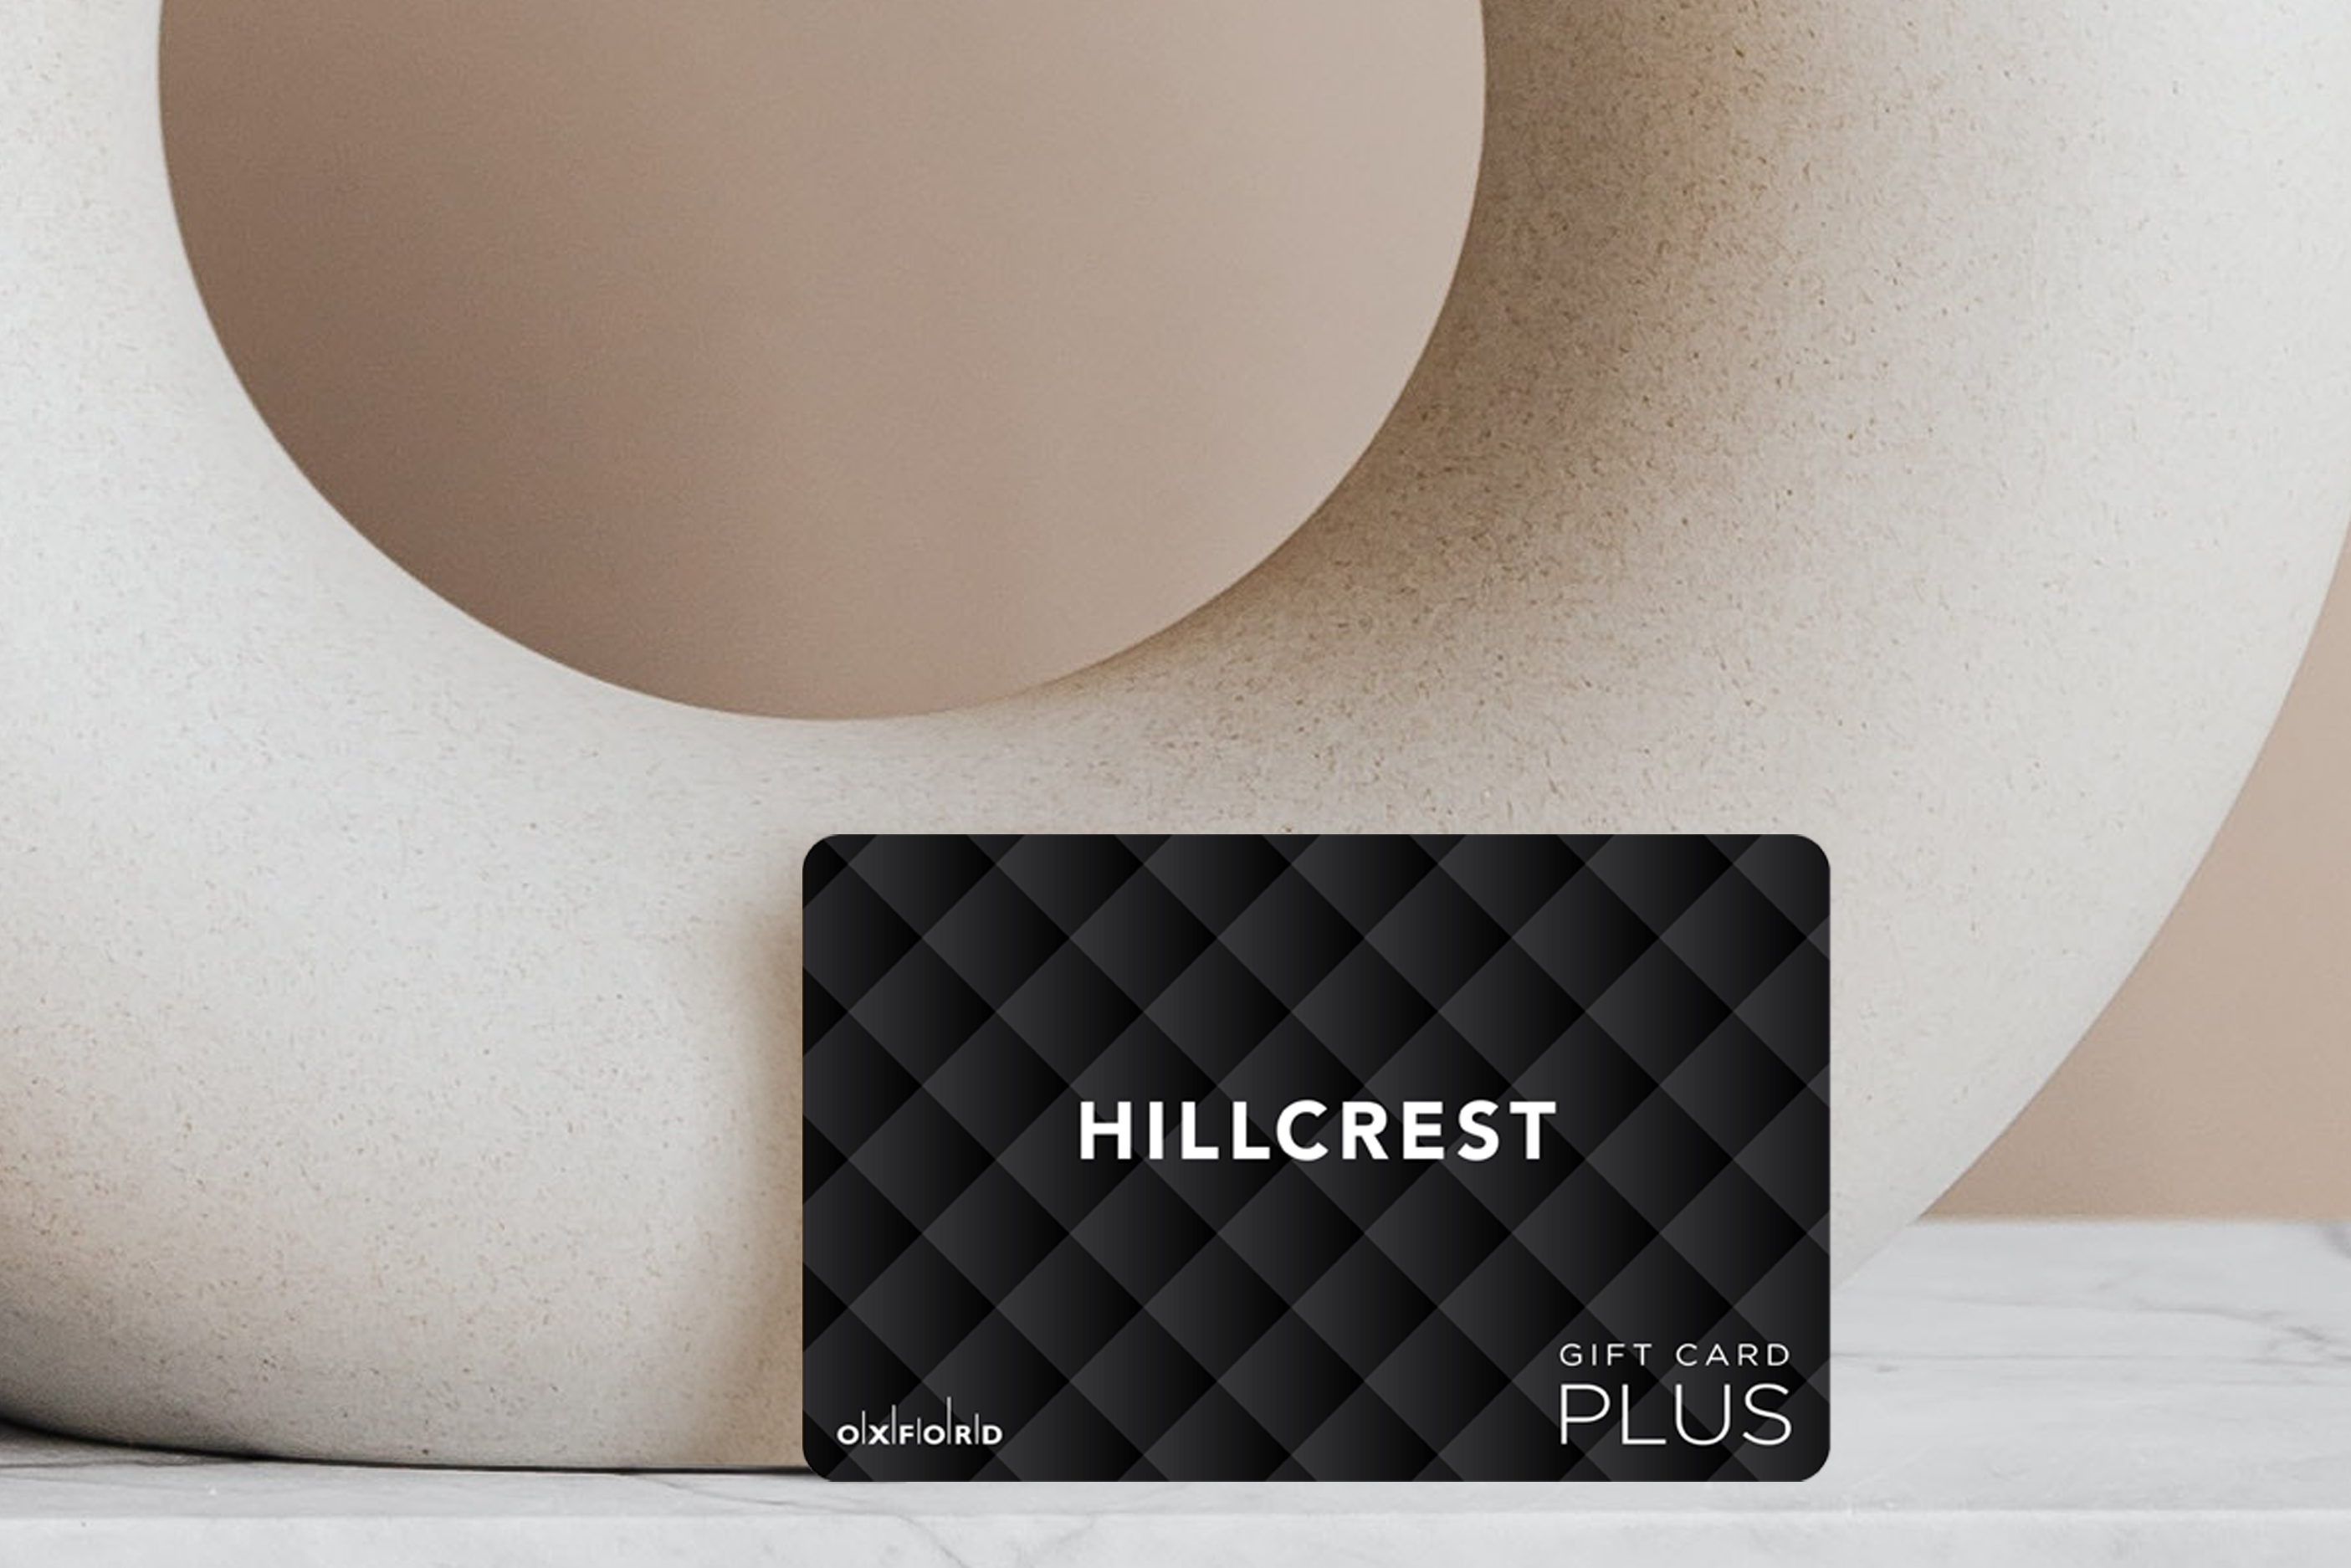 Hillcrest quilted gift card leaning against beige circular vase.